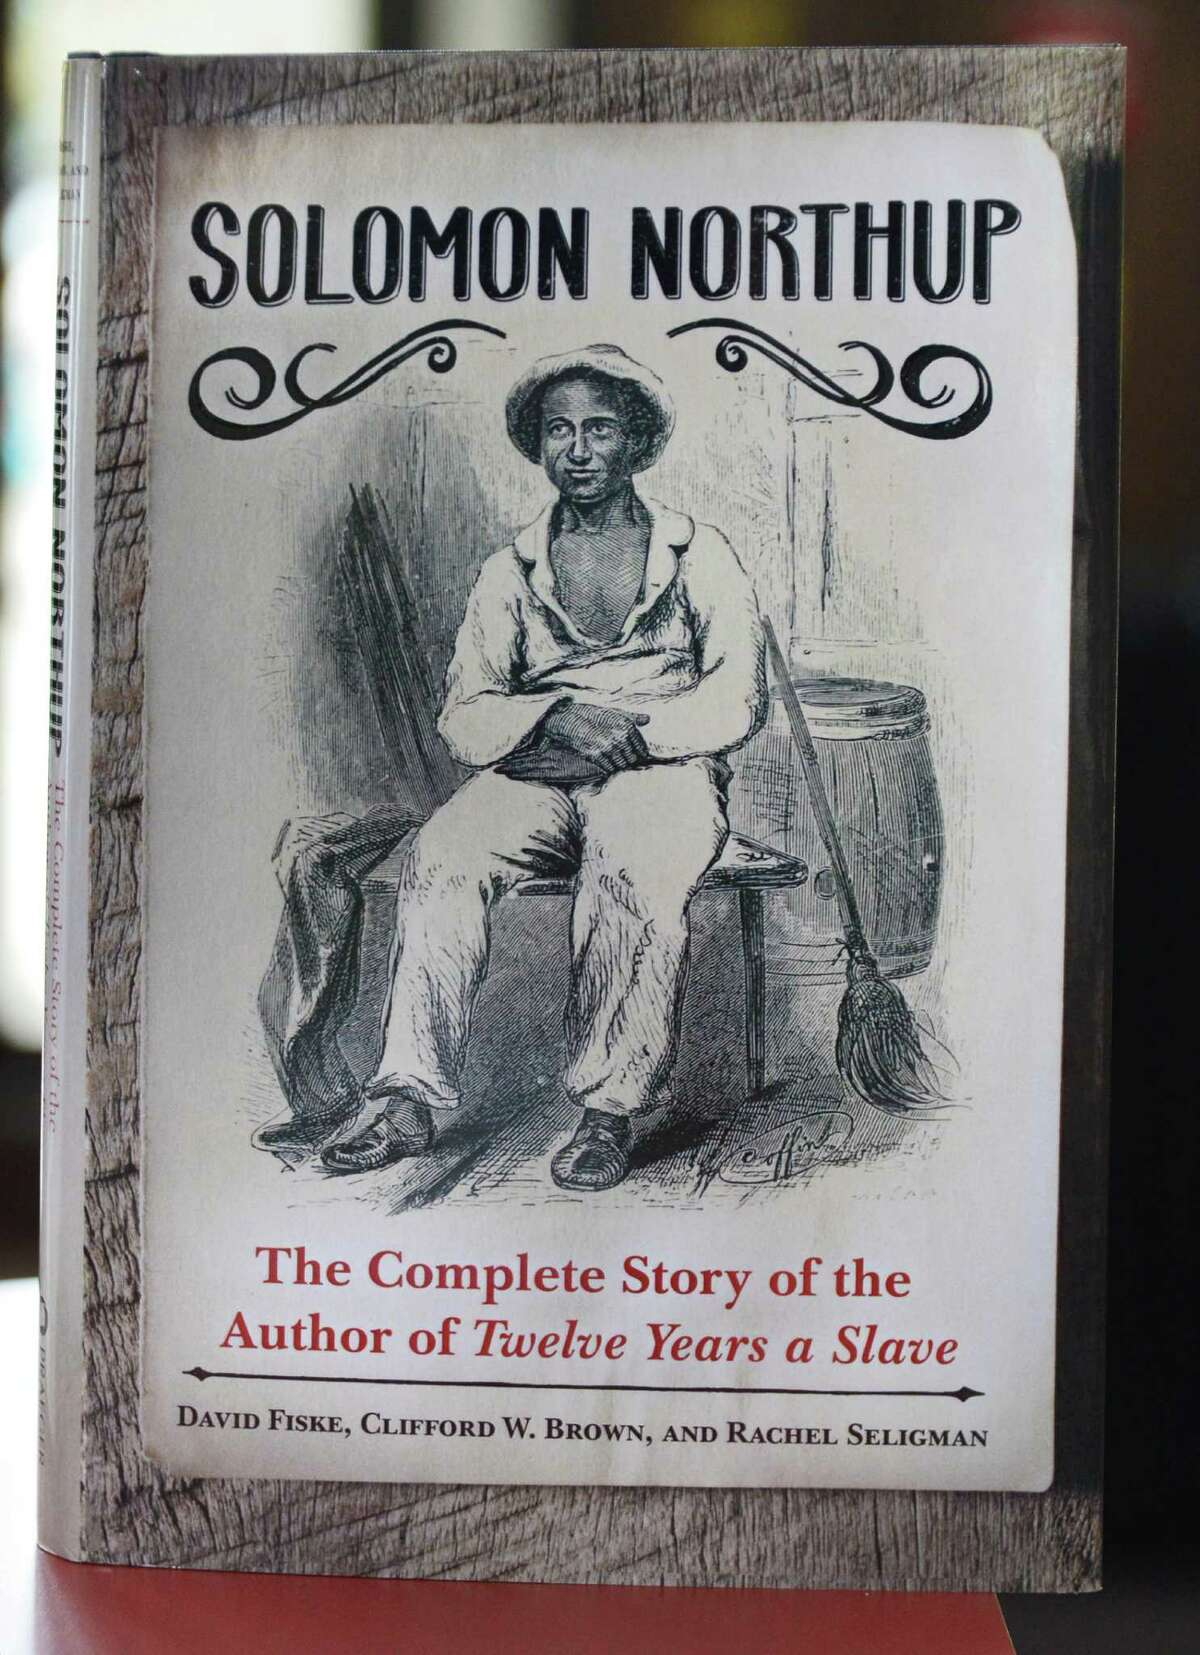 A new, full biography of Solomon Northup by local authors David Fiske, Rachel Seligman, and Clifford Brown Wednesday Oct. 16, 2013, in Saratoga Springs, NY. (John Carl D'Annibale / Times Union)